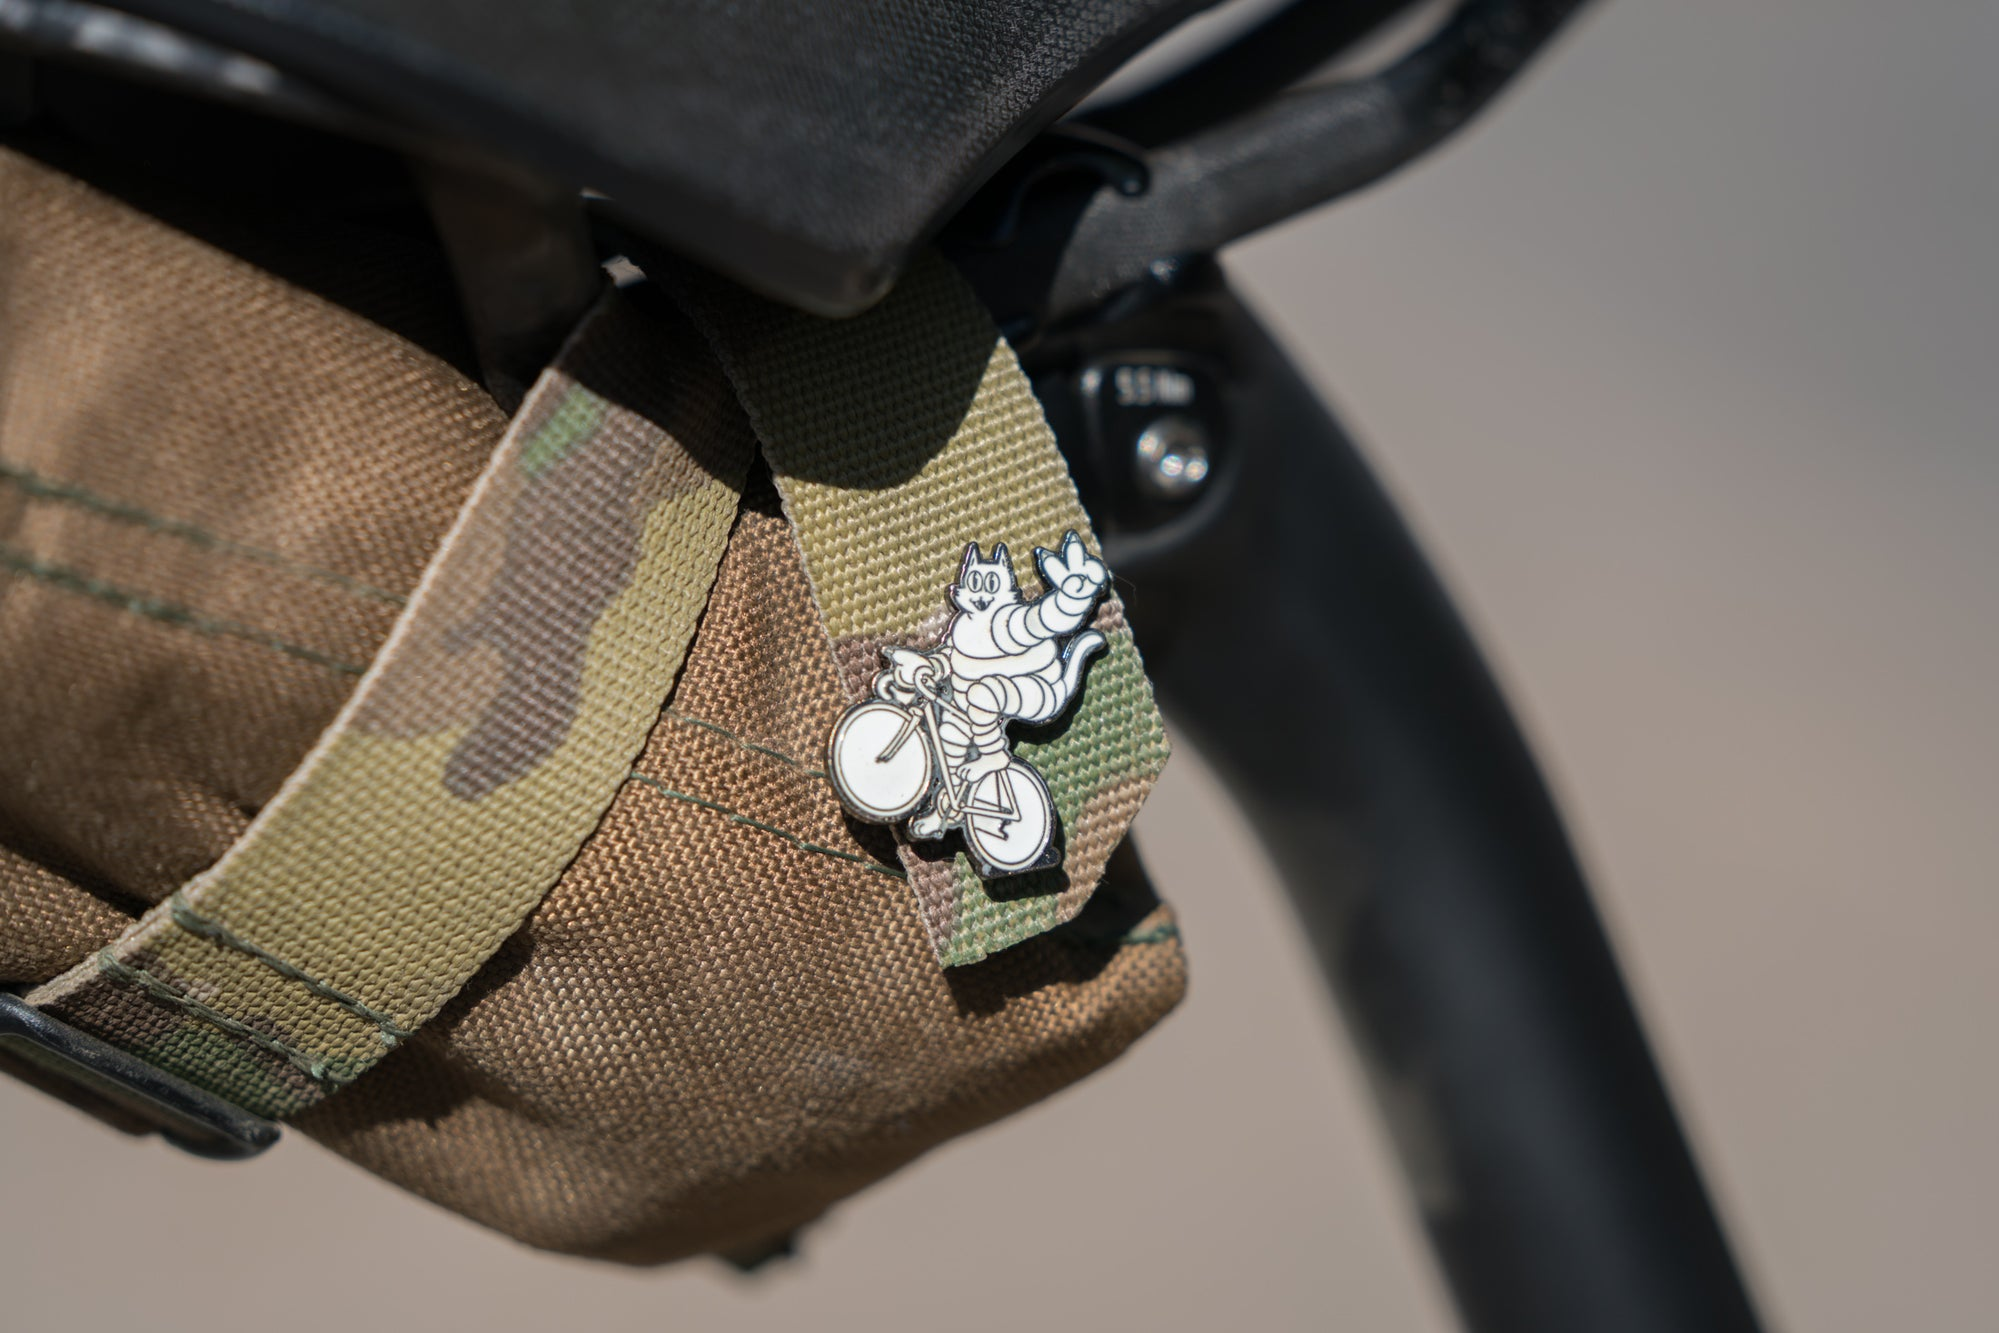 Meowchelin Peace Wheelie Cat Lapel Pin